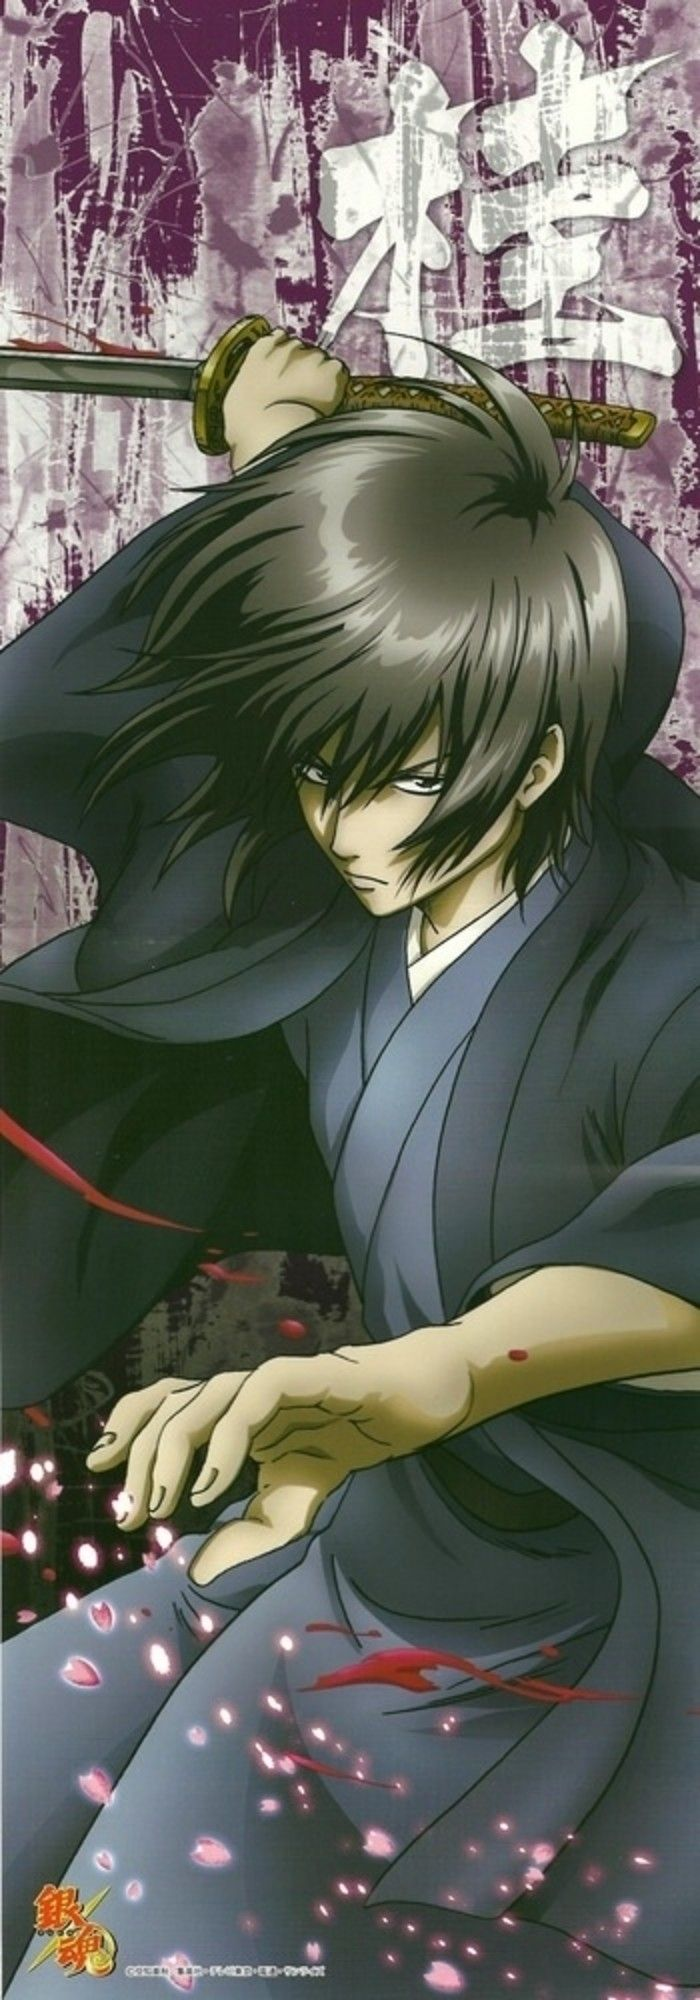 """It's not long hair, it's Katsura!"""